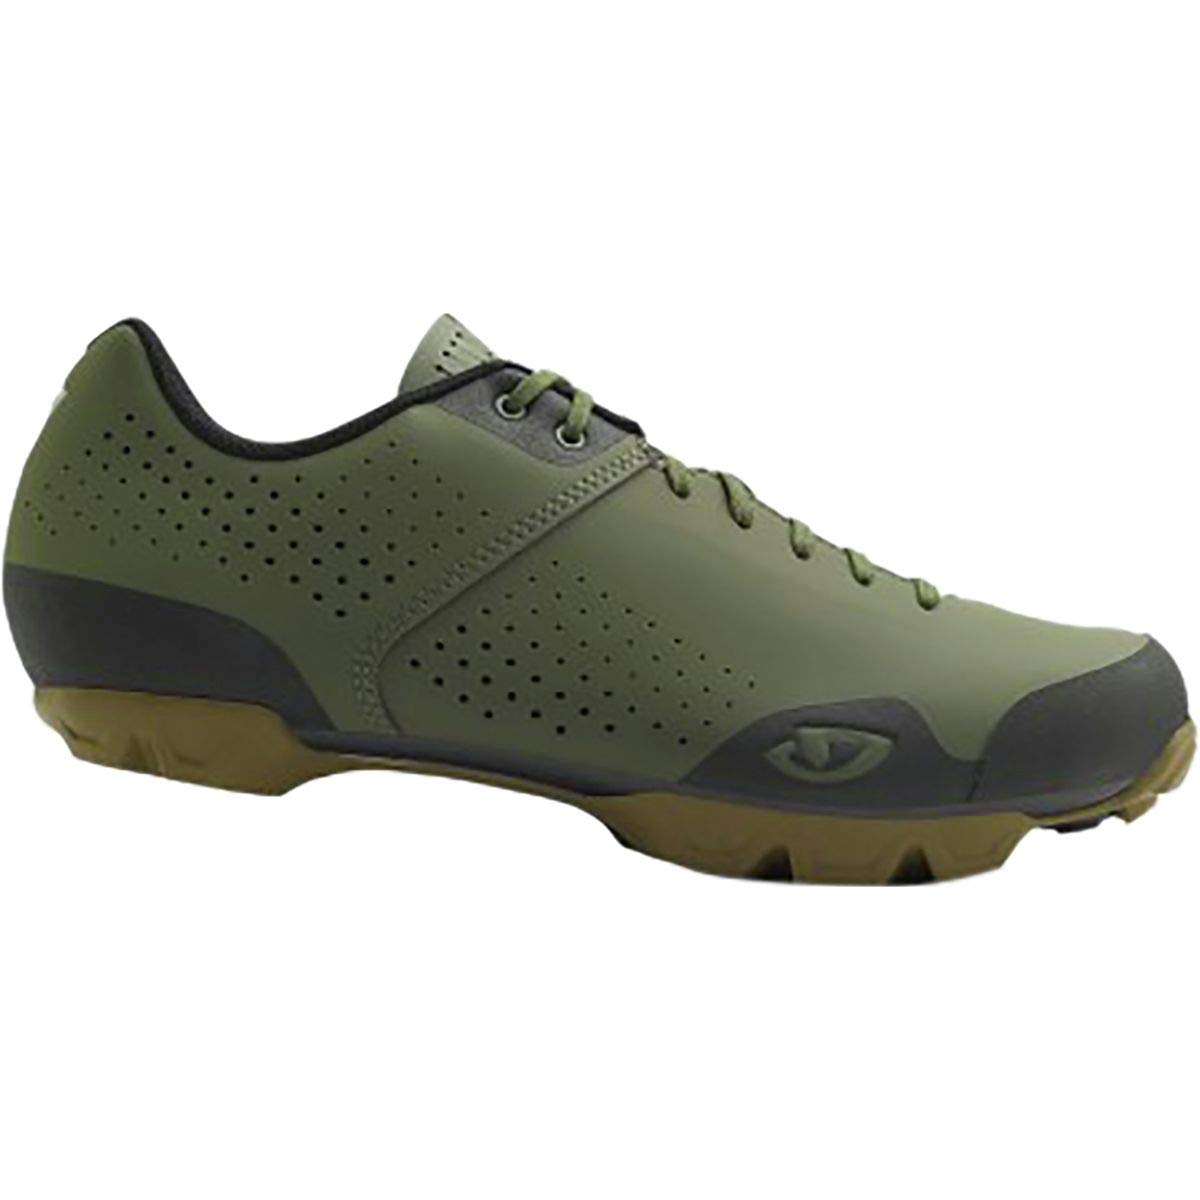 Olive Gum Giro Privateer Lace Cycling shoes - Men's